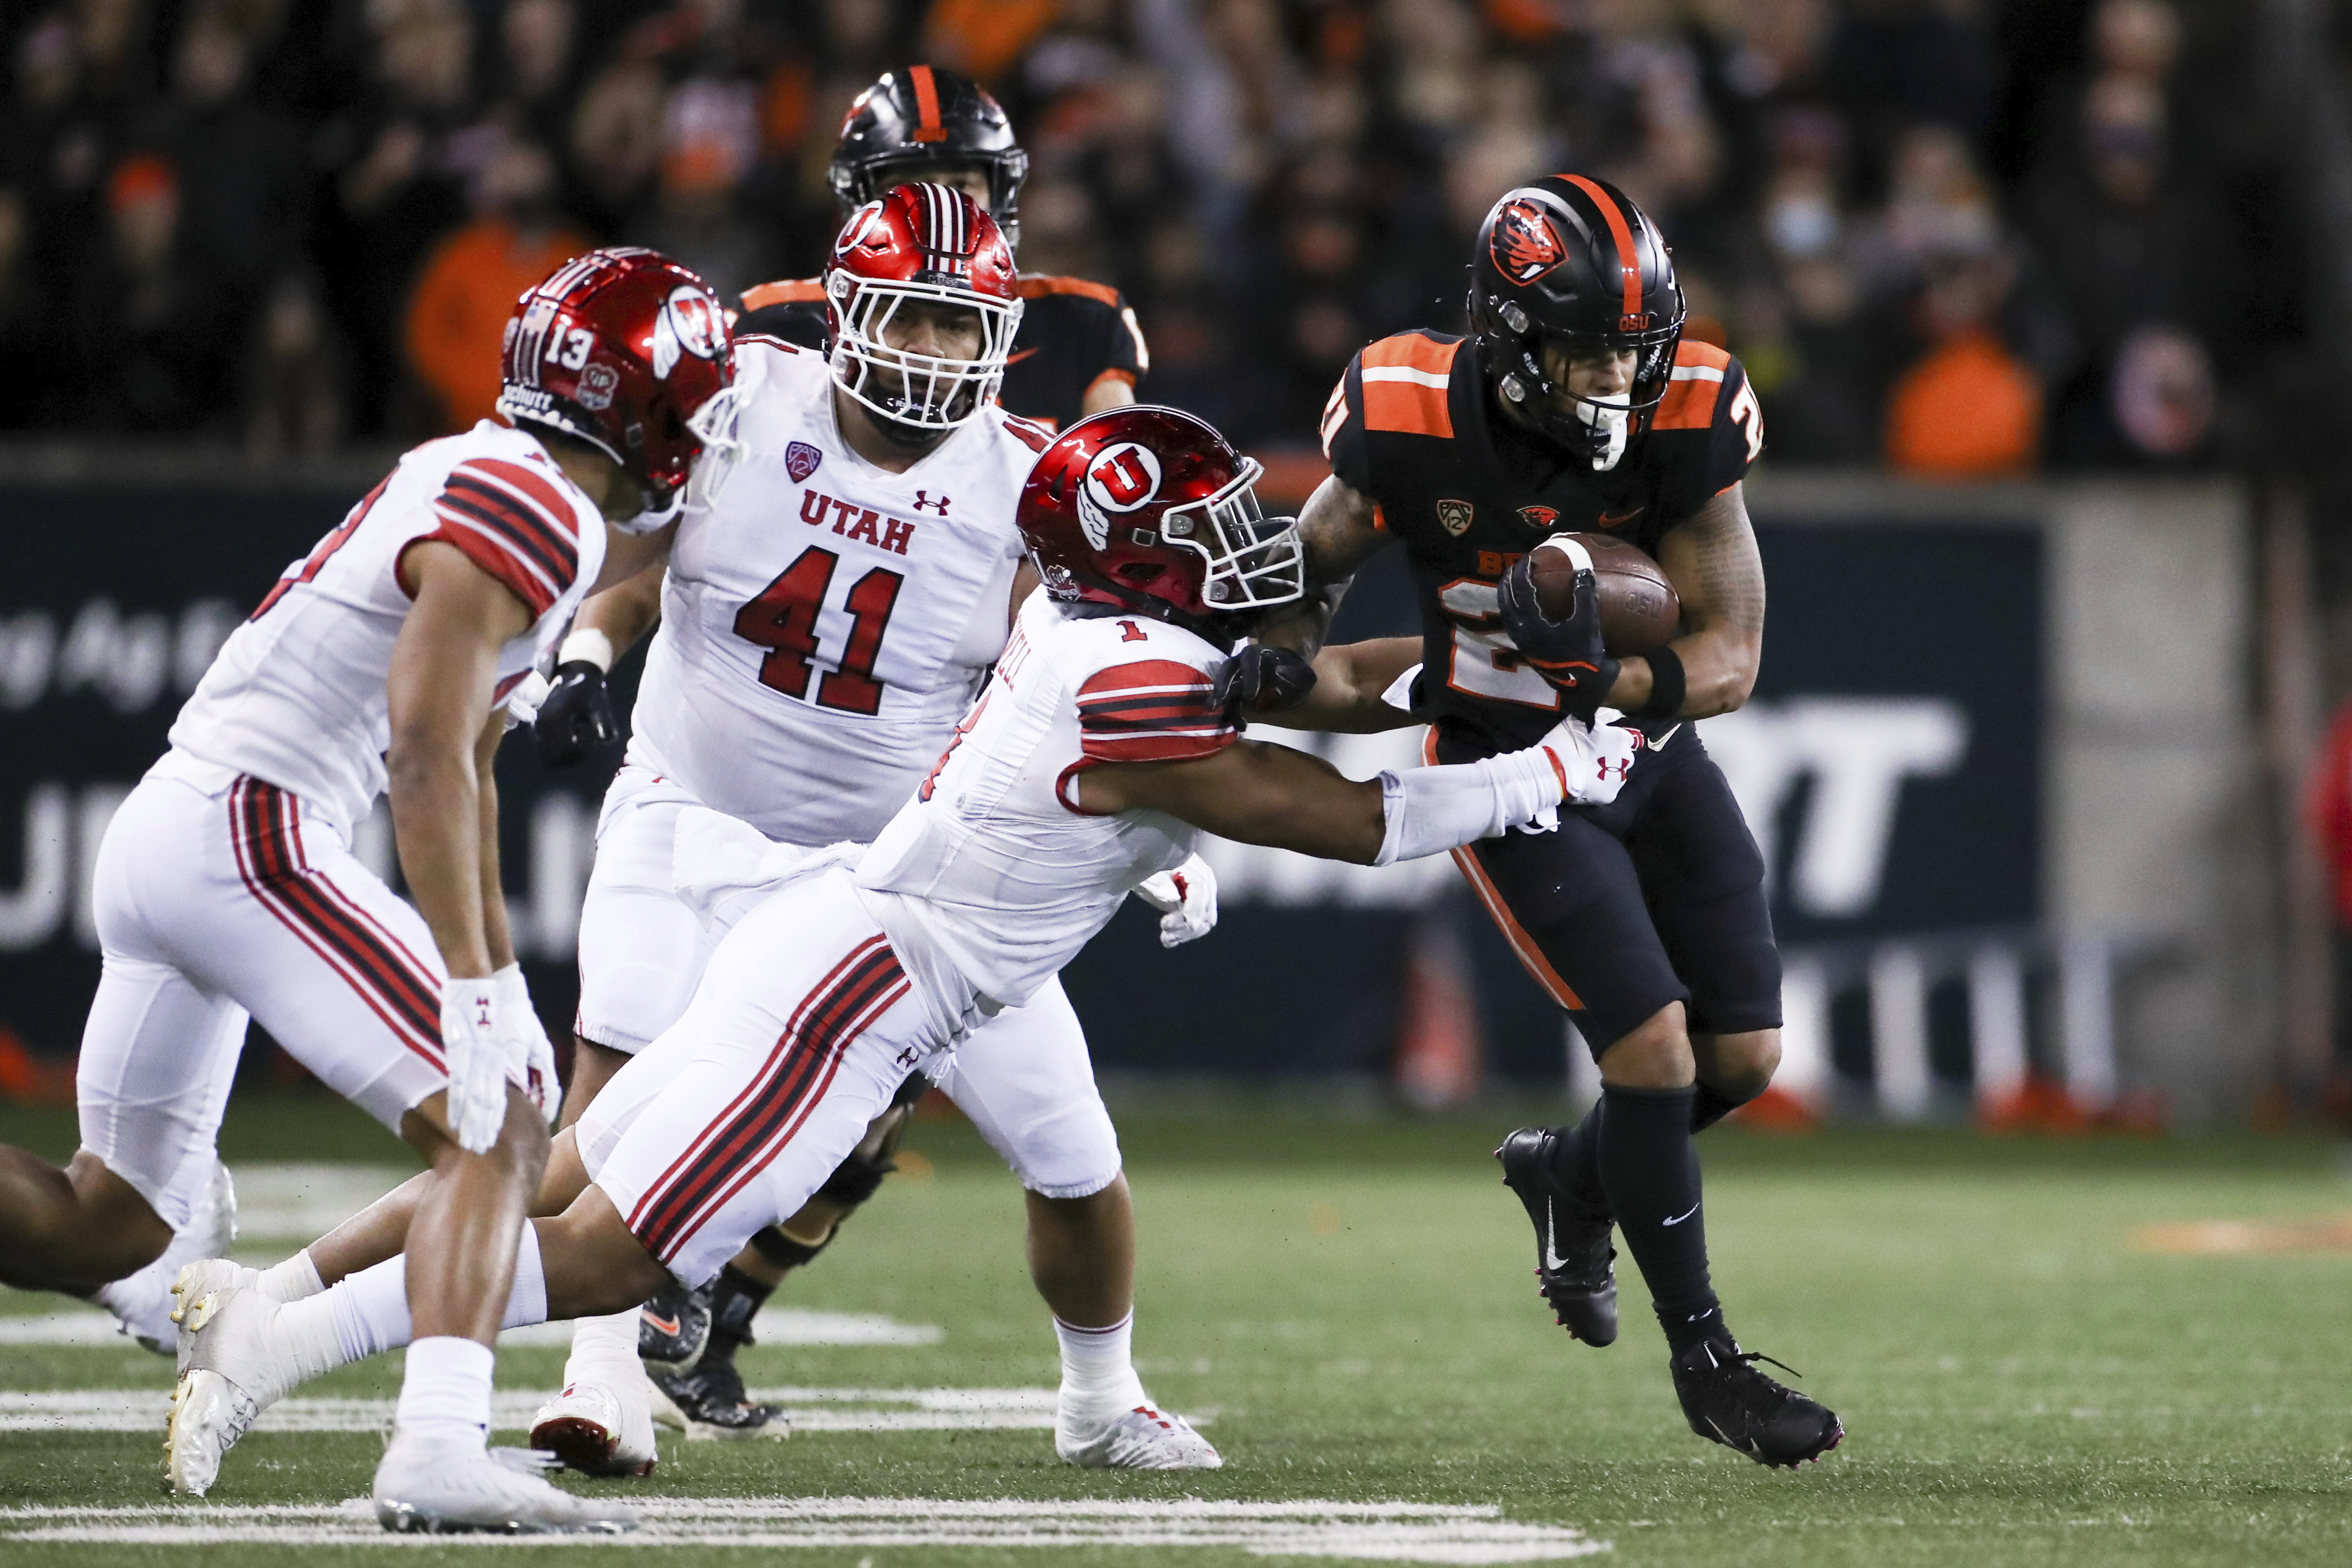 Oregon State running back Trey Lowe is brought down by Utah's Nephi Sewell during game Oct. 23, 2021, in Corvallis, Ore.